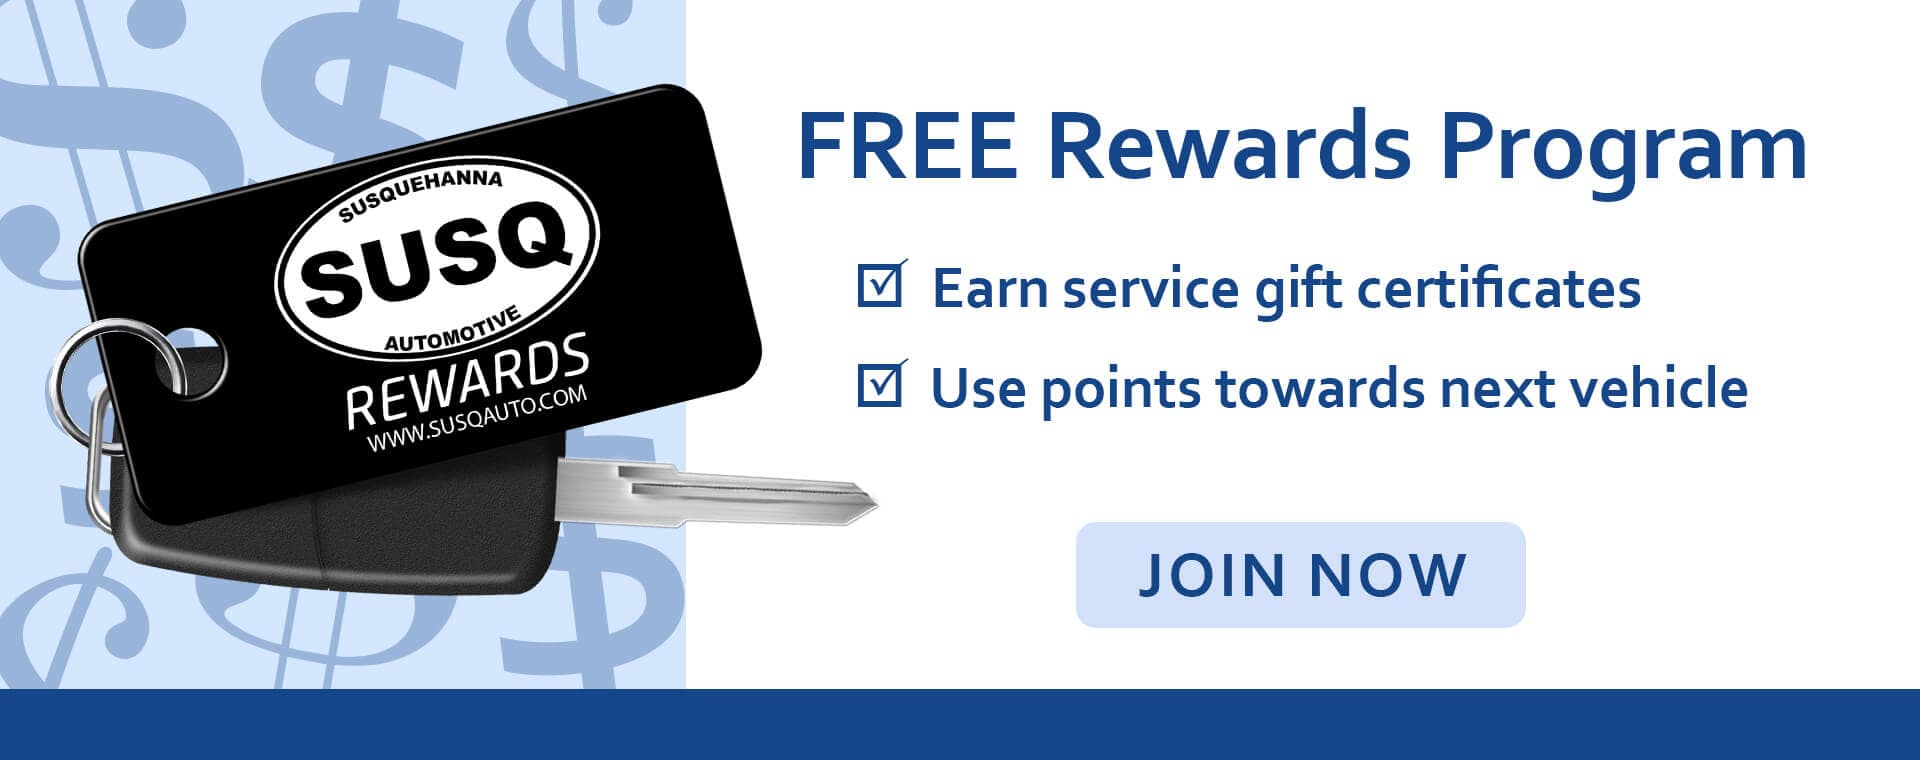 FREE REWARDS PROGRAM EARN SERVICE GIFT CERTIFICATES - USE POINTS TOWARDS NEXT VEHICLE JOIN NOW